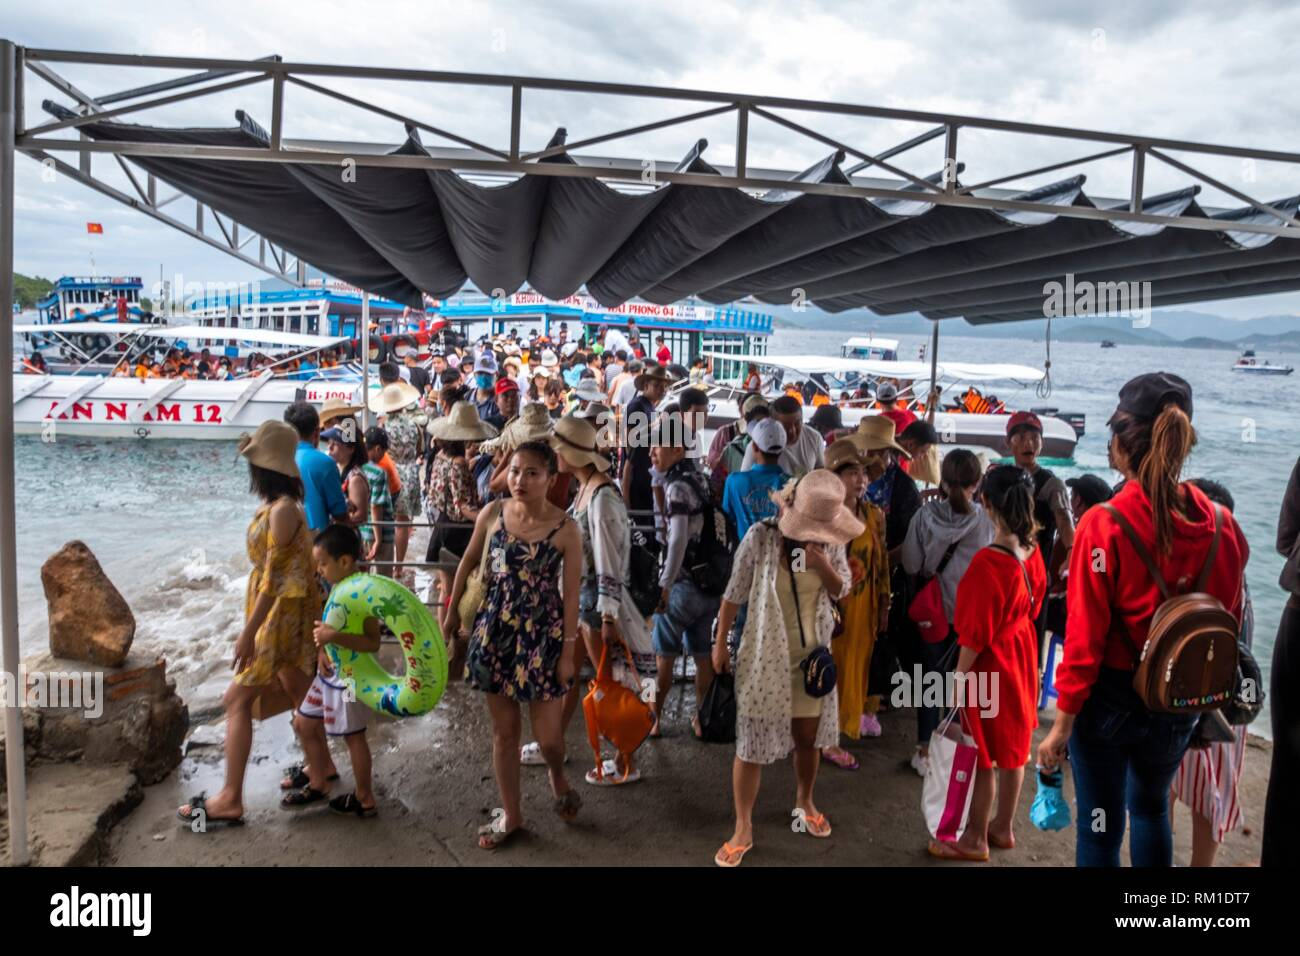 Beach of the island of Hon Mun, Nha Trang Bay, South China Sea, Nha Trang, Vietnam - Stock Image